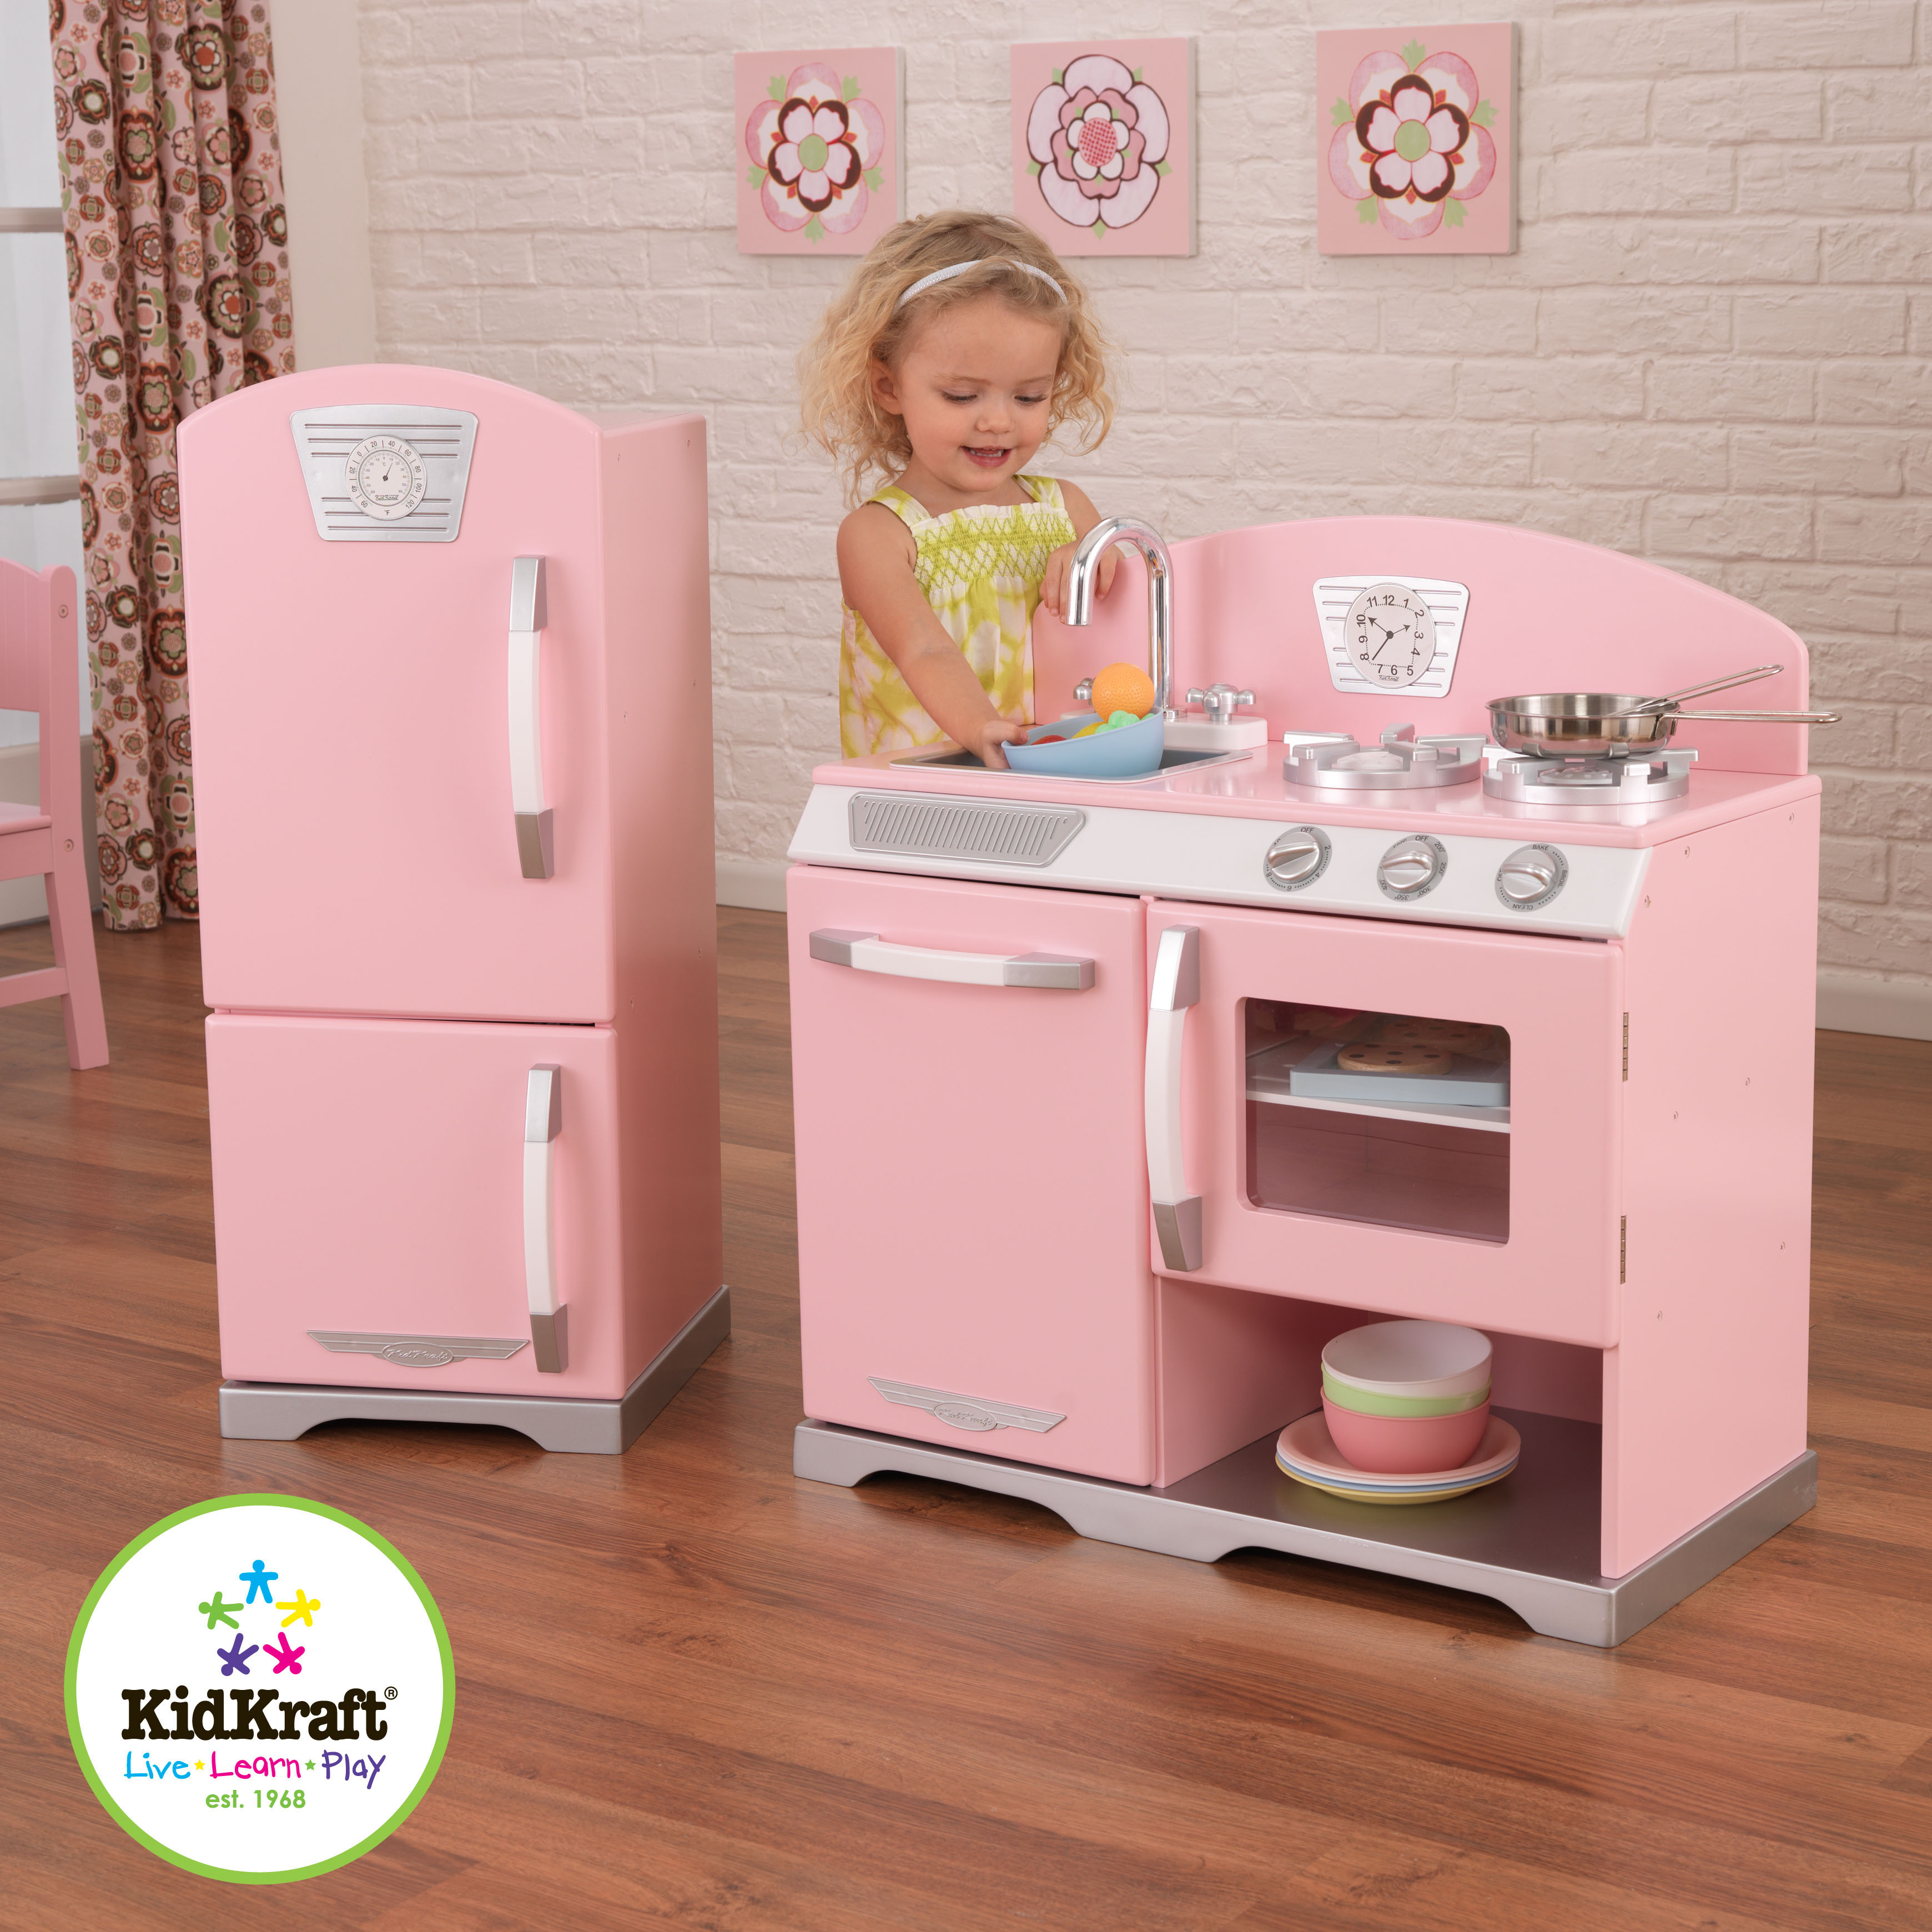 Toy Sets For Toddlers Toddler Kitchen Sets